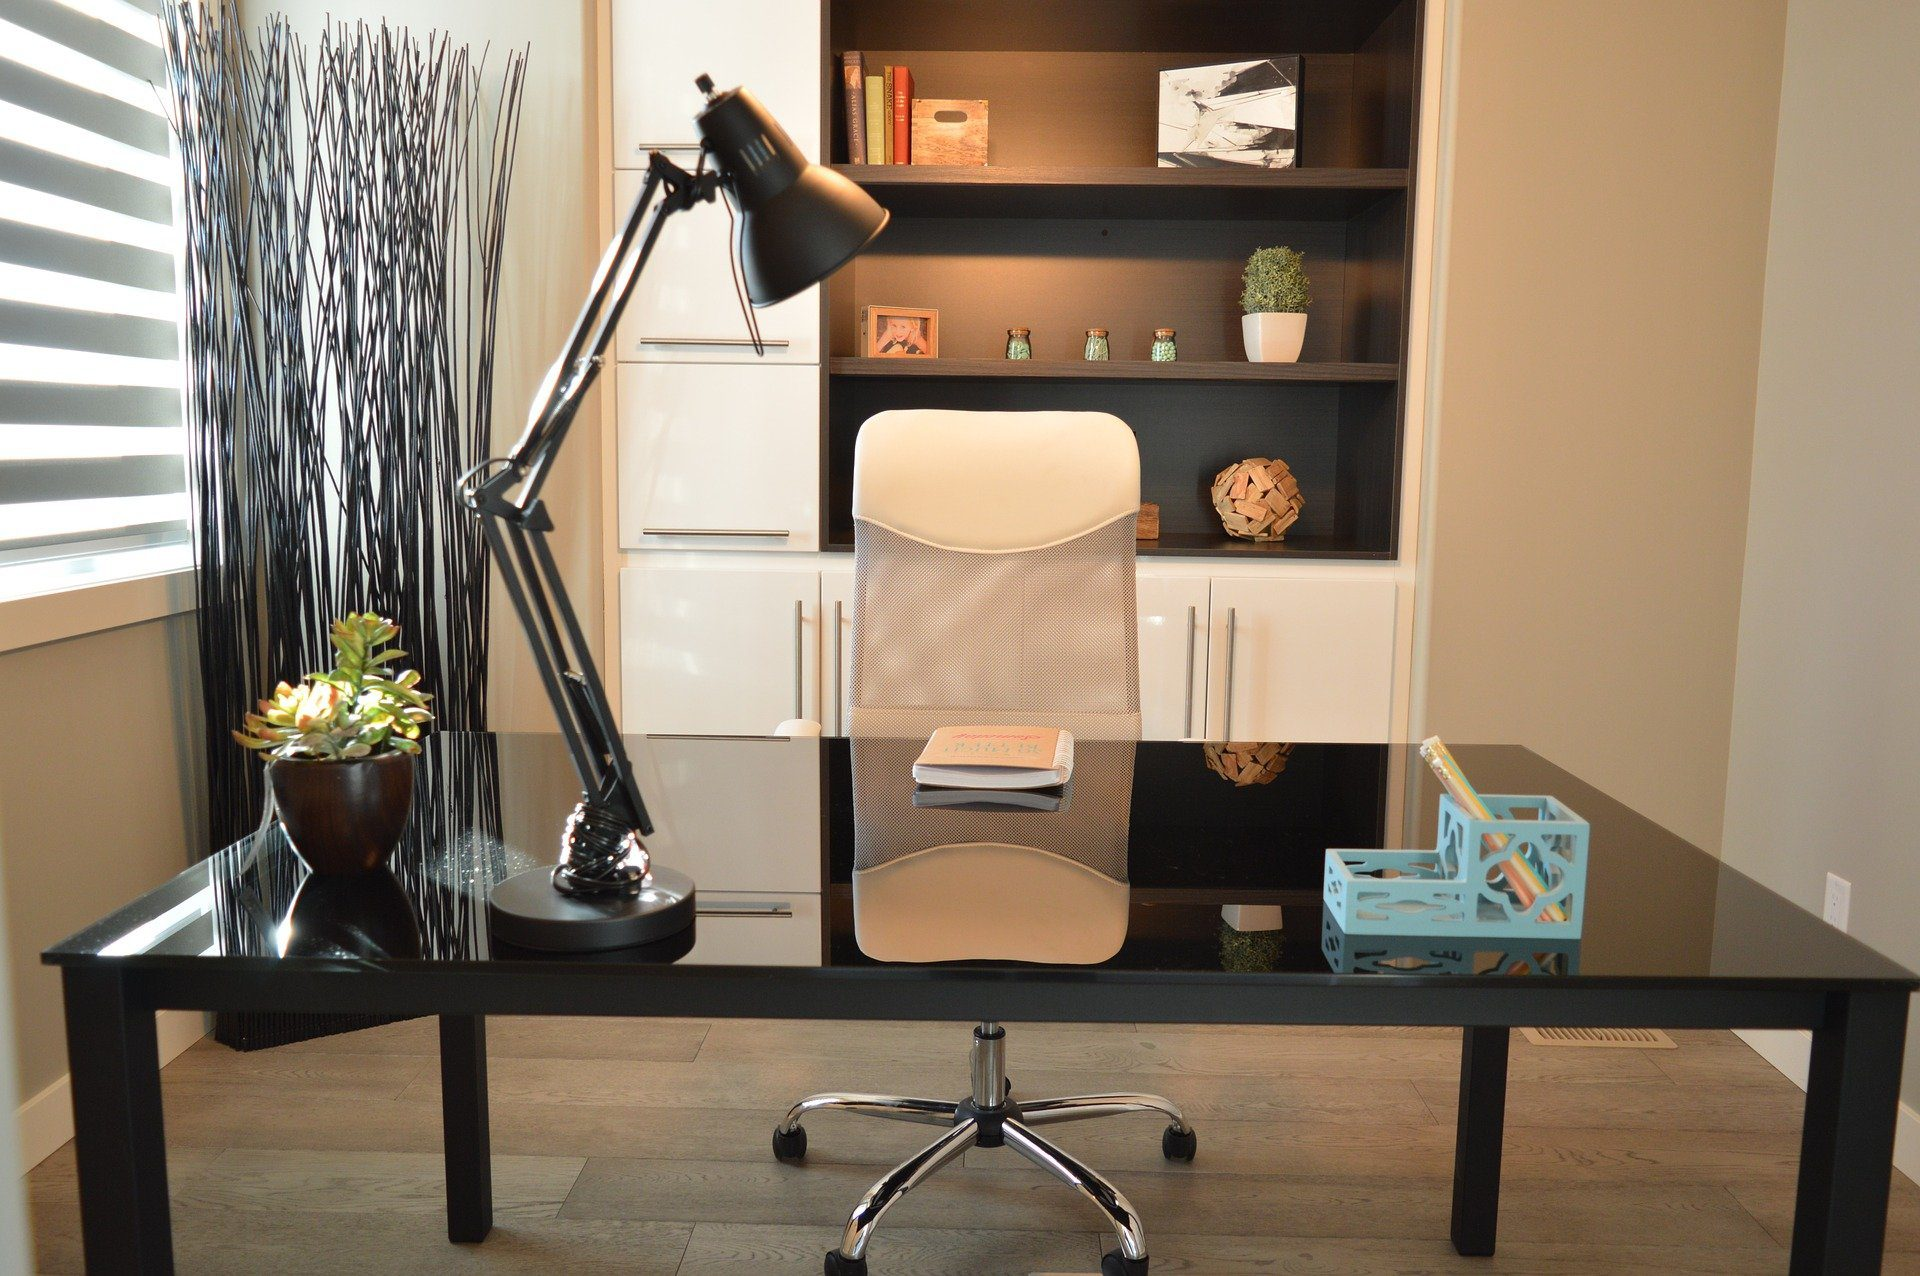 4 Reasons Why You Should Pay Attention to Office Furniture